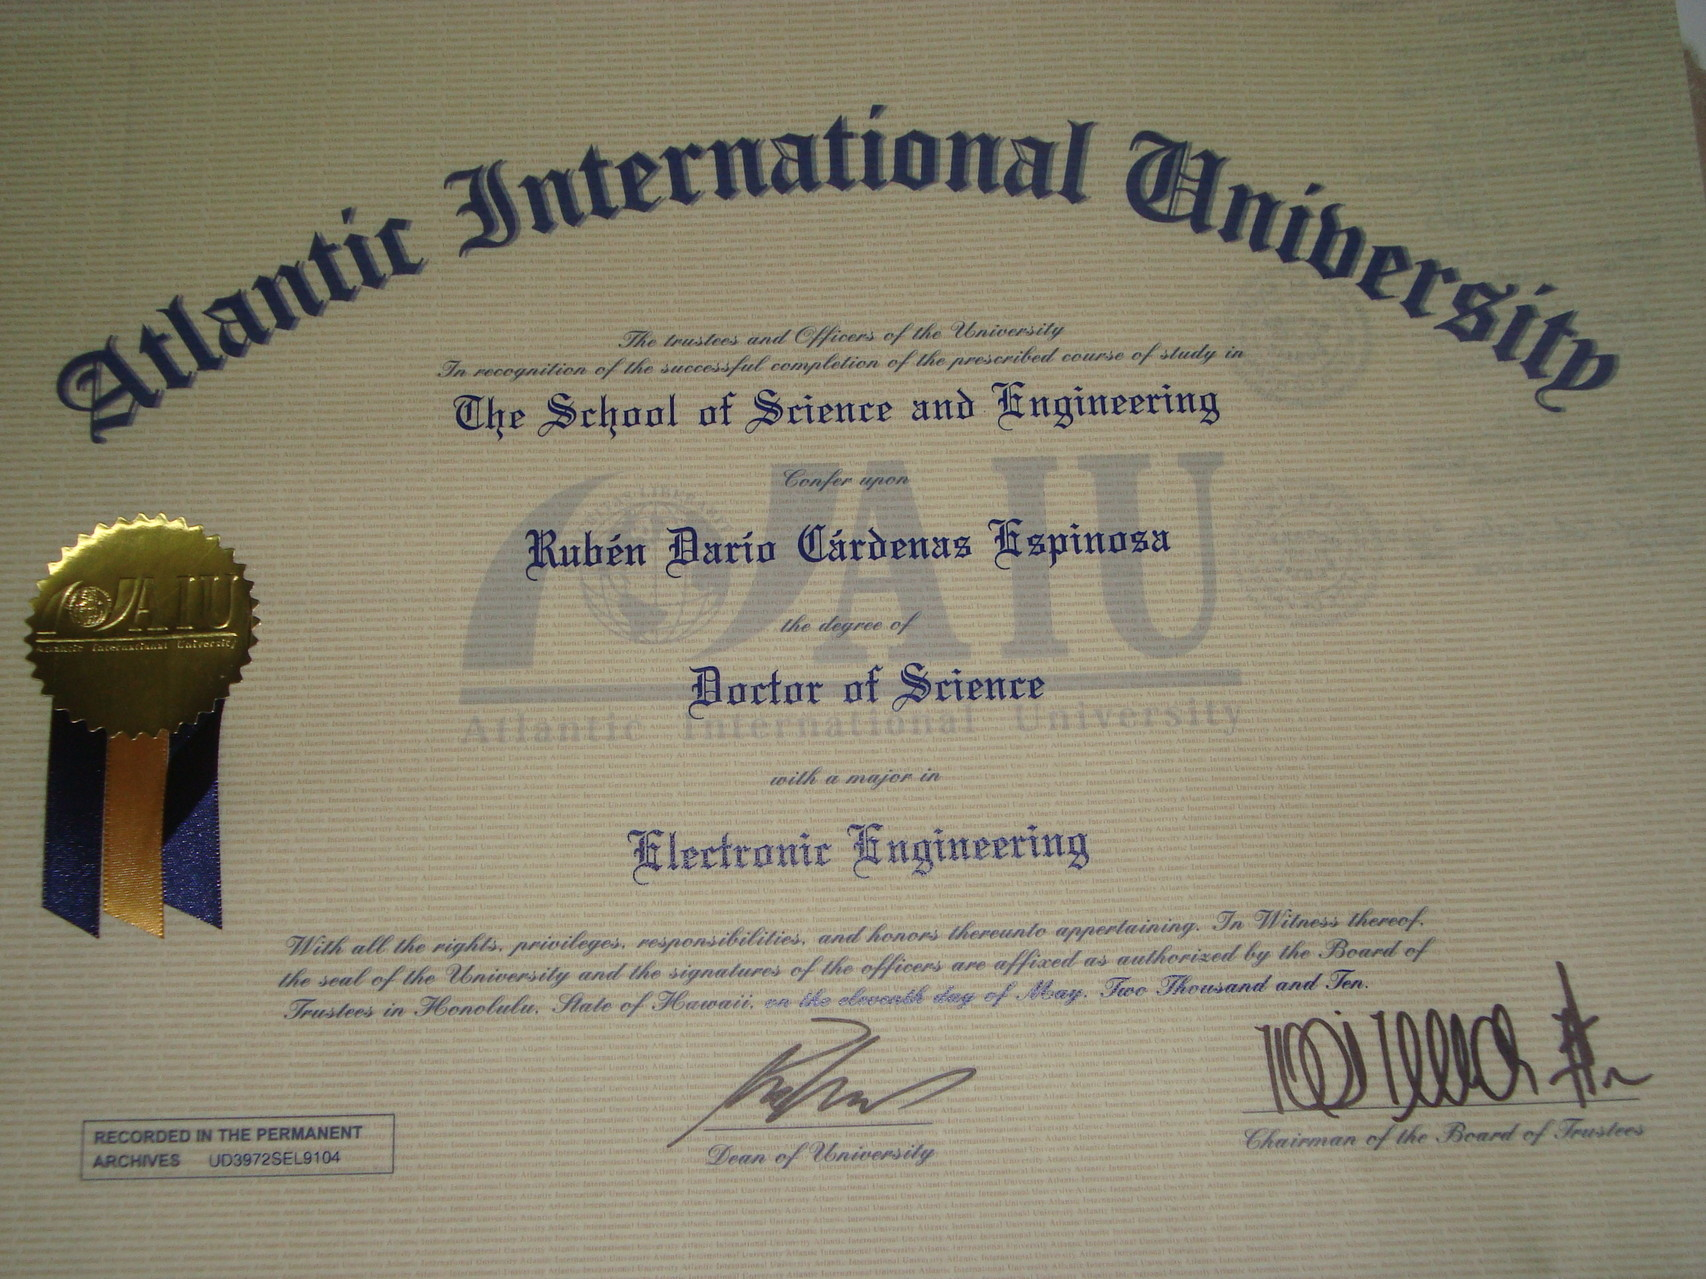 DSc Electronic Engineering